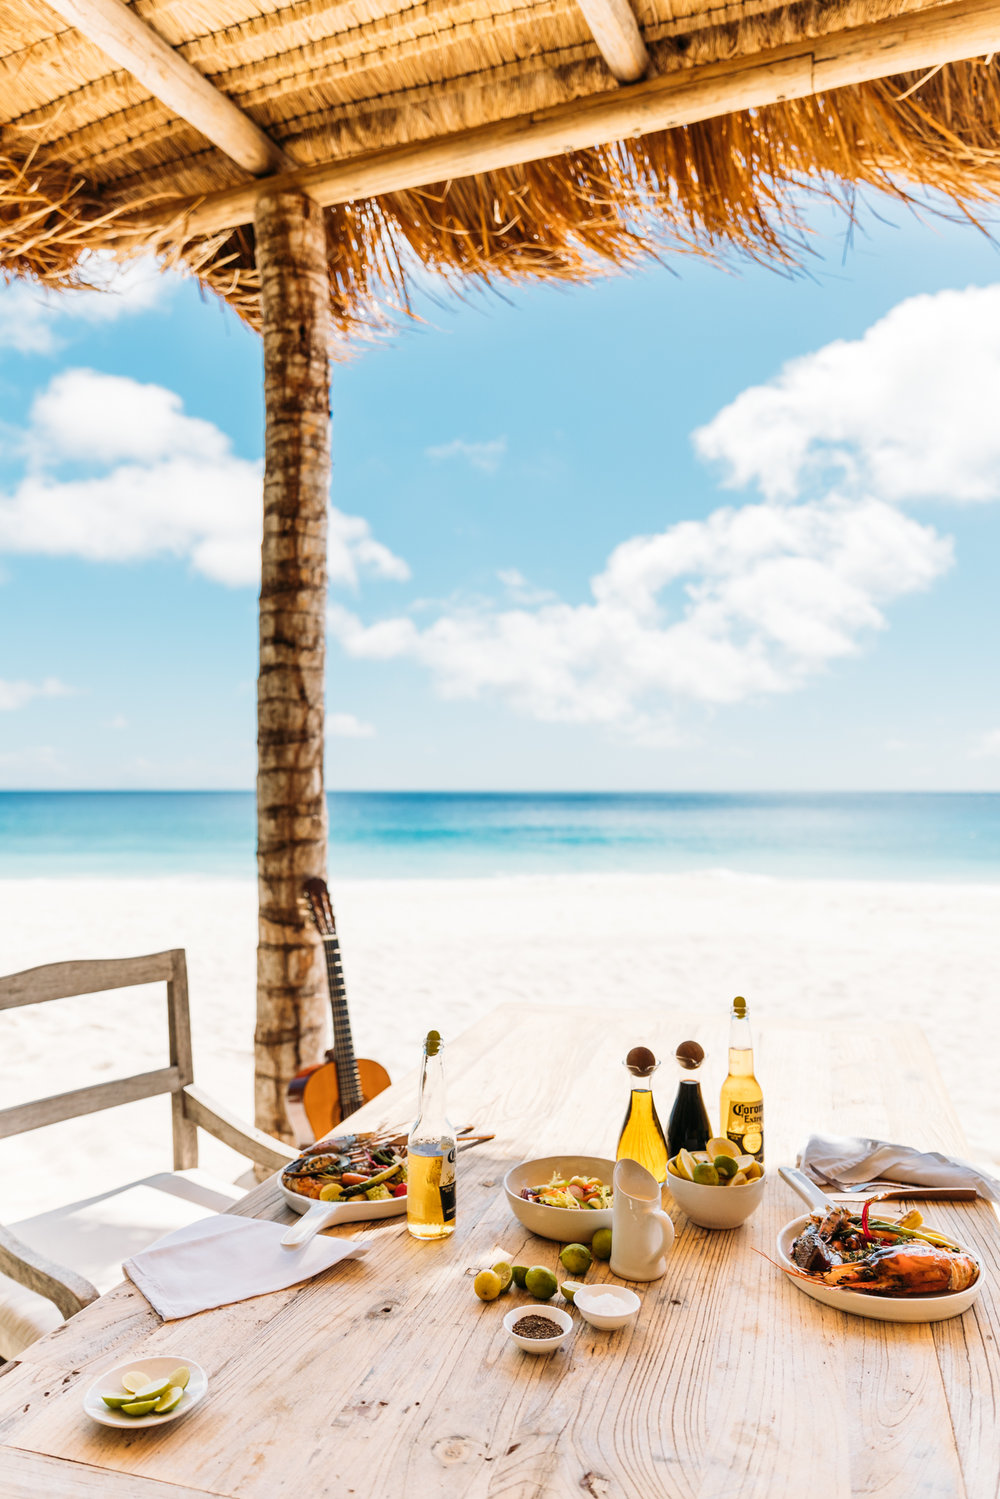 A seafood barbecue lunch is served with ice-cold Corona at West Beach Bar in Seychelles